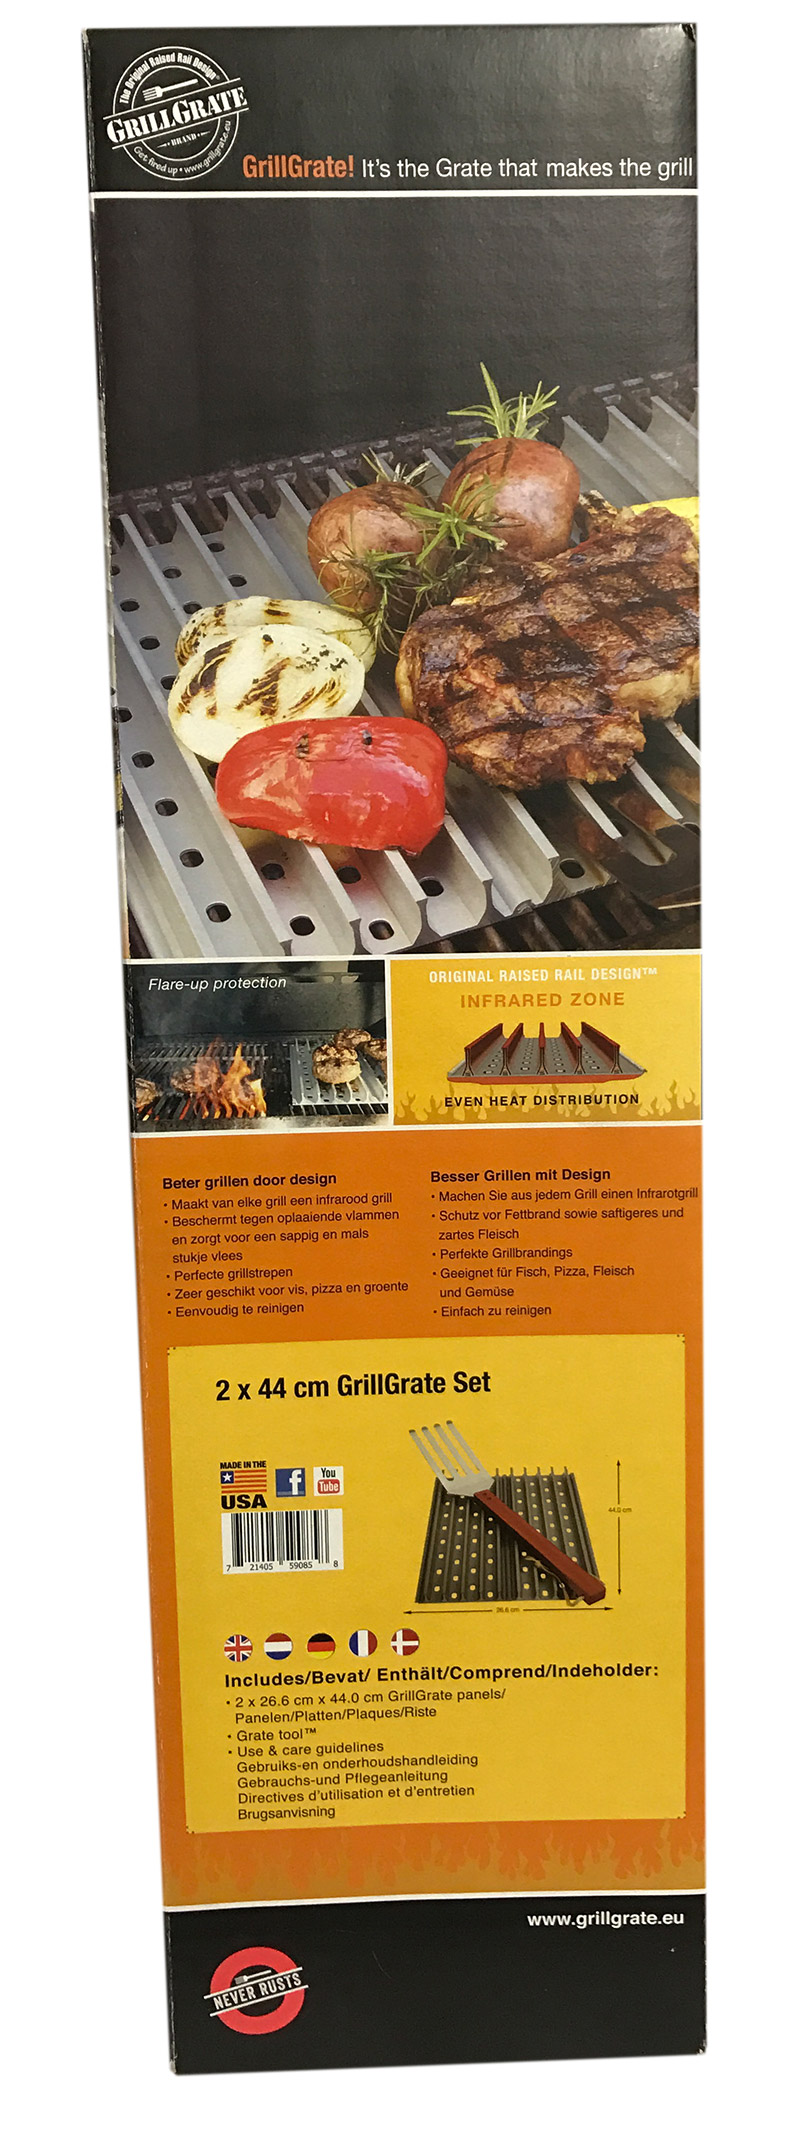 Grill Grate (44 x 26,6 cm) Kit + 1 Grate Tool